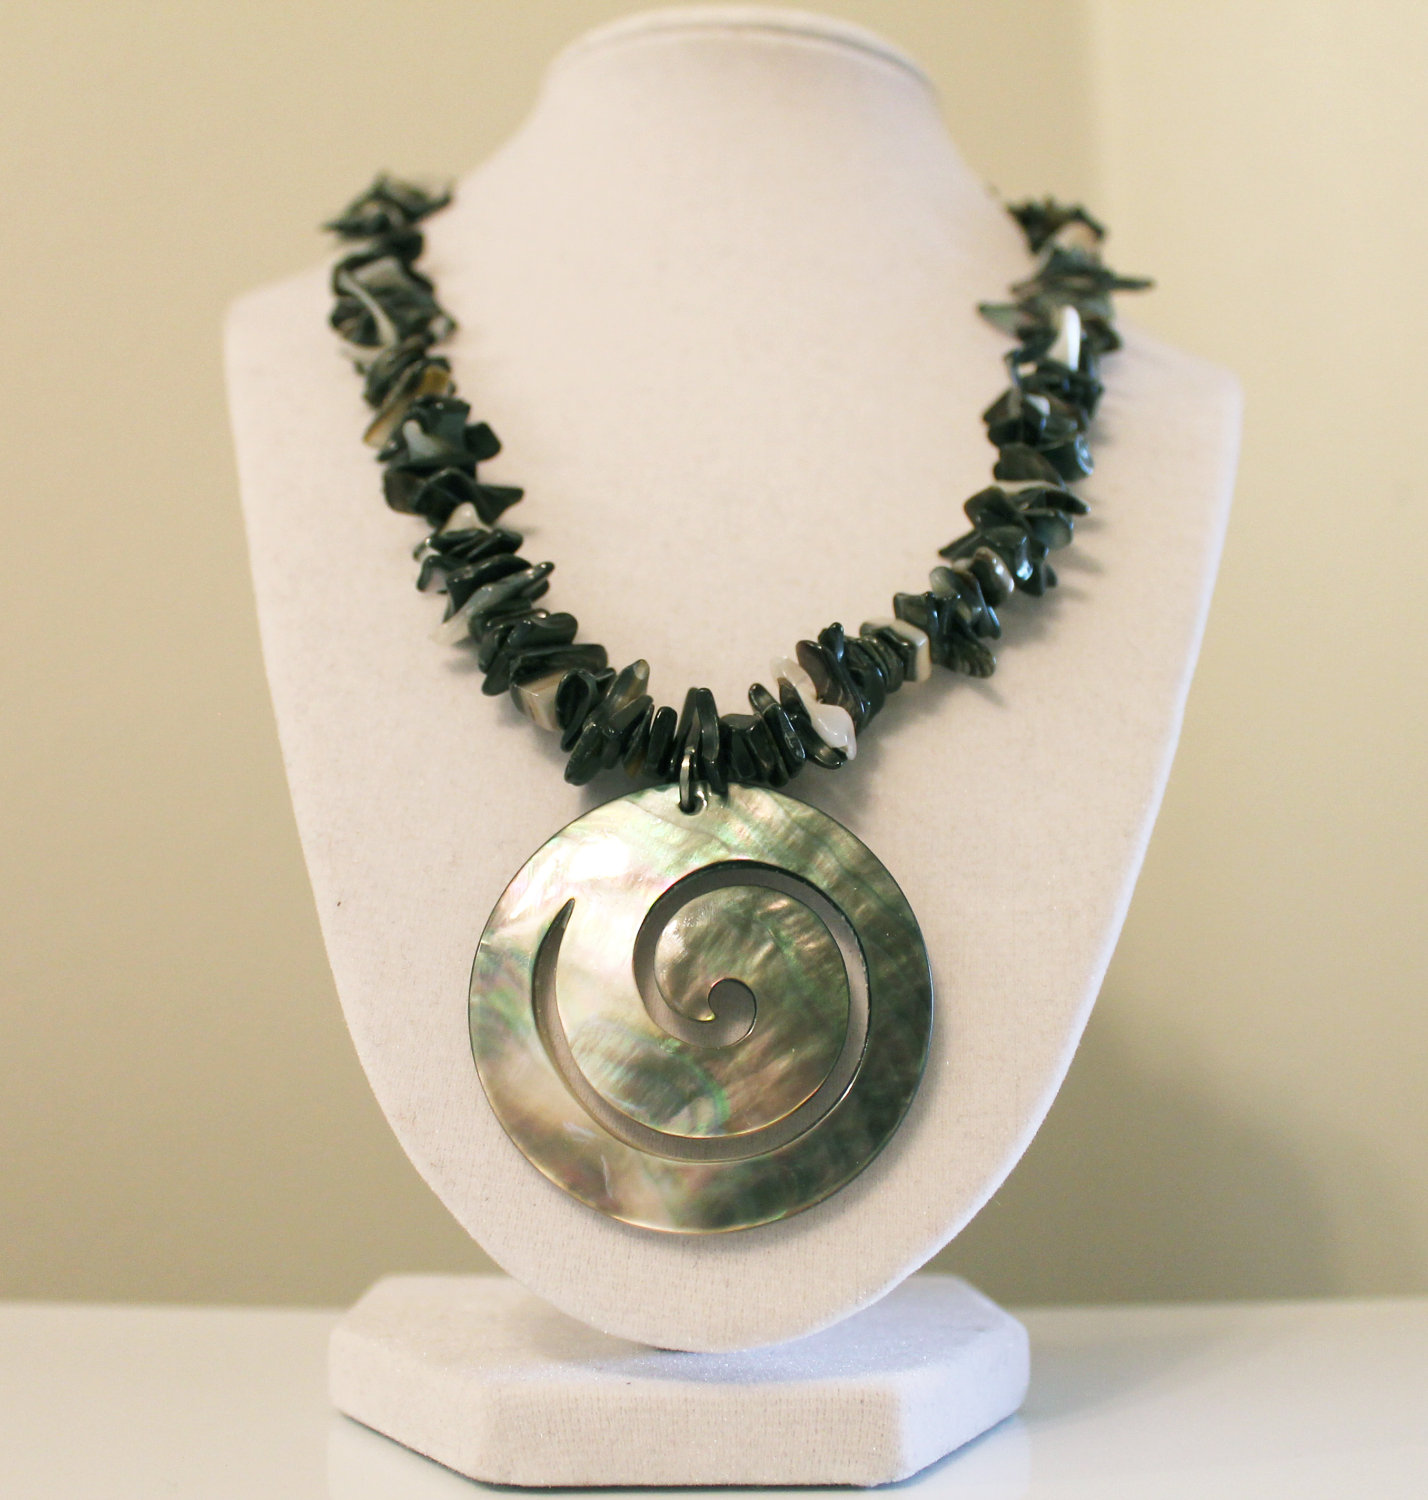 Moons Jewelry Shell Necklace Silver Necklace Black